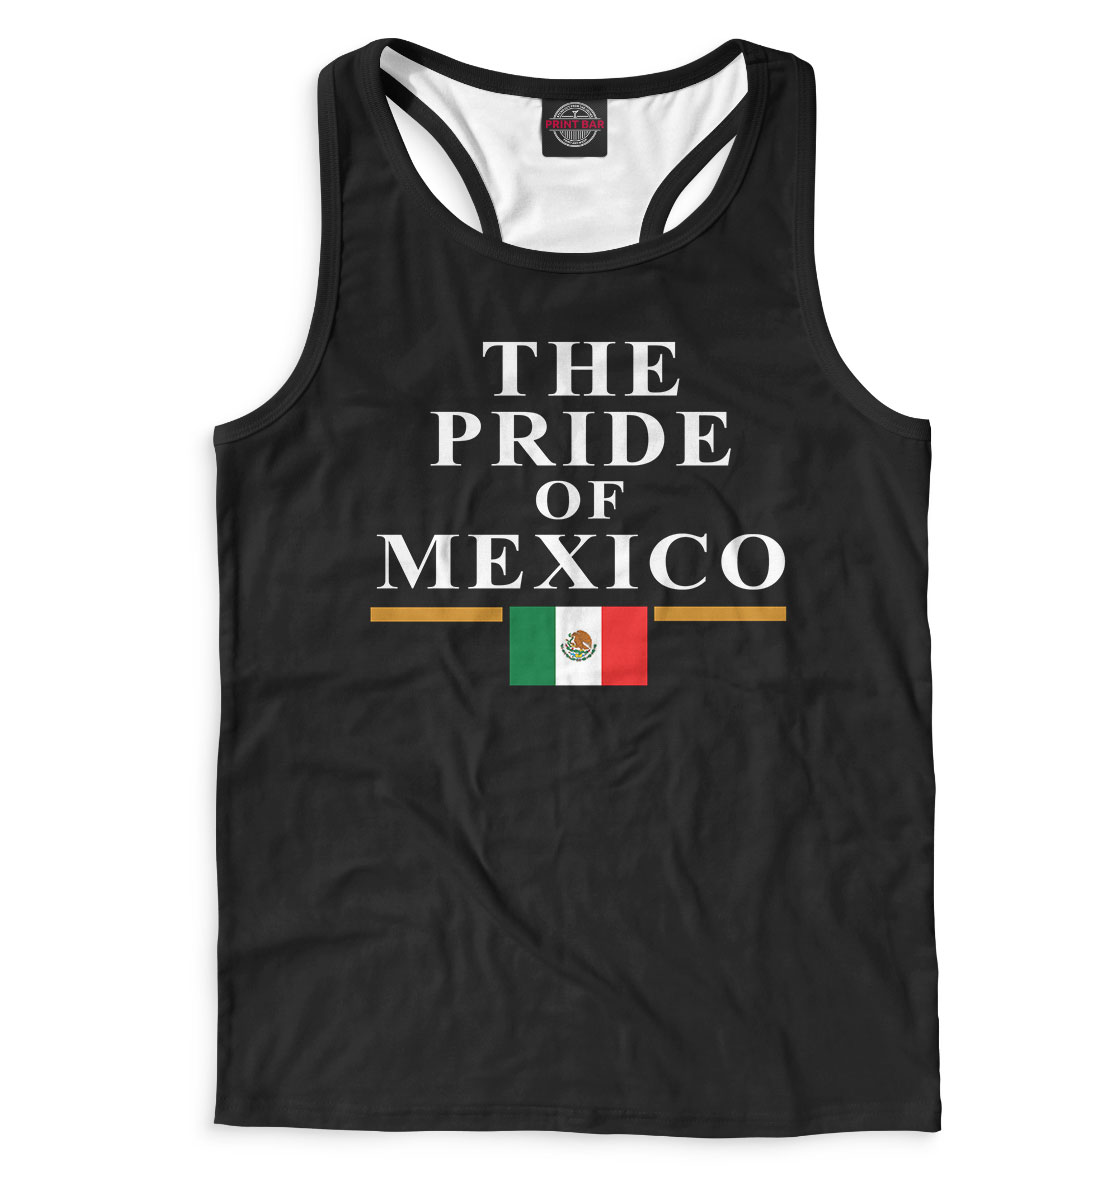 Купить The Pride of Mexico, Printbar, Майки борцовки, WWE-340406-mayb-2